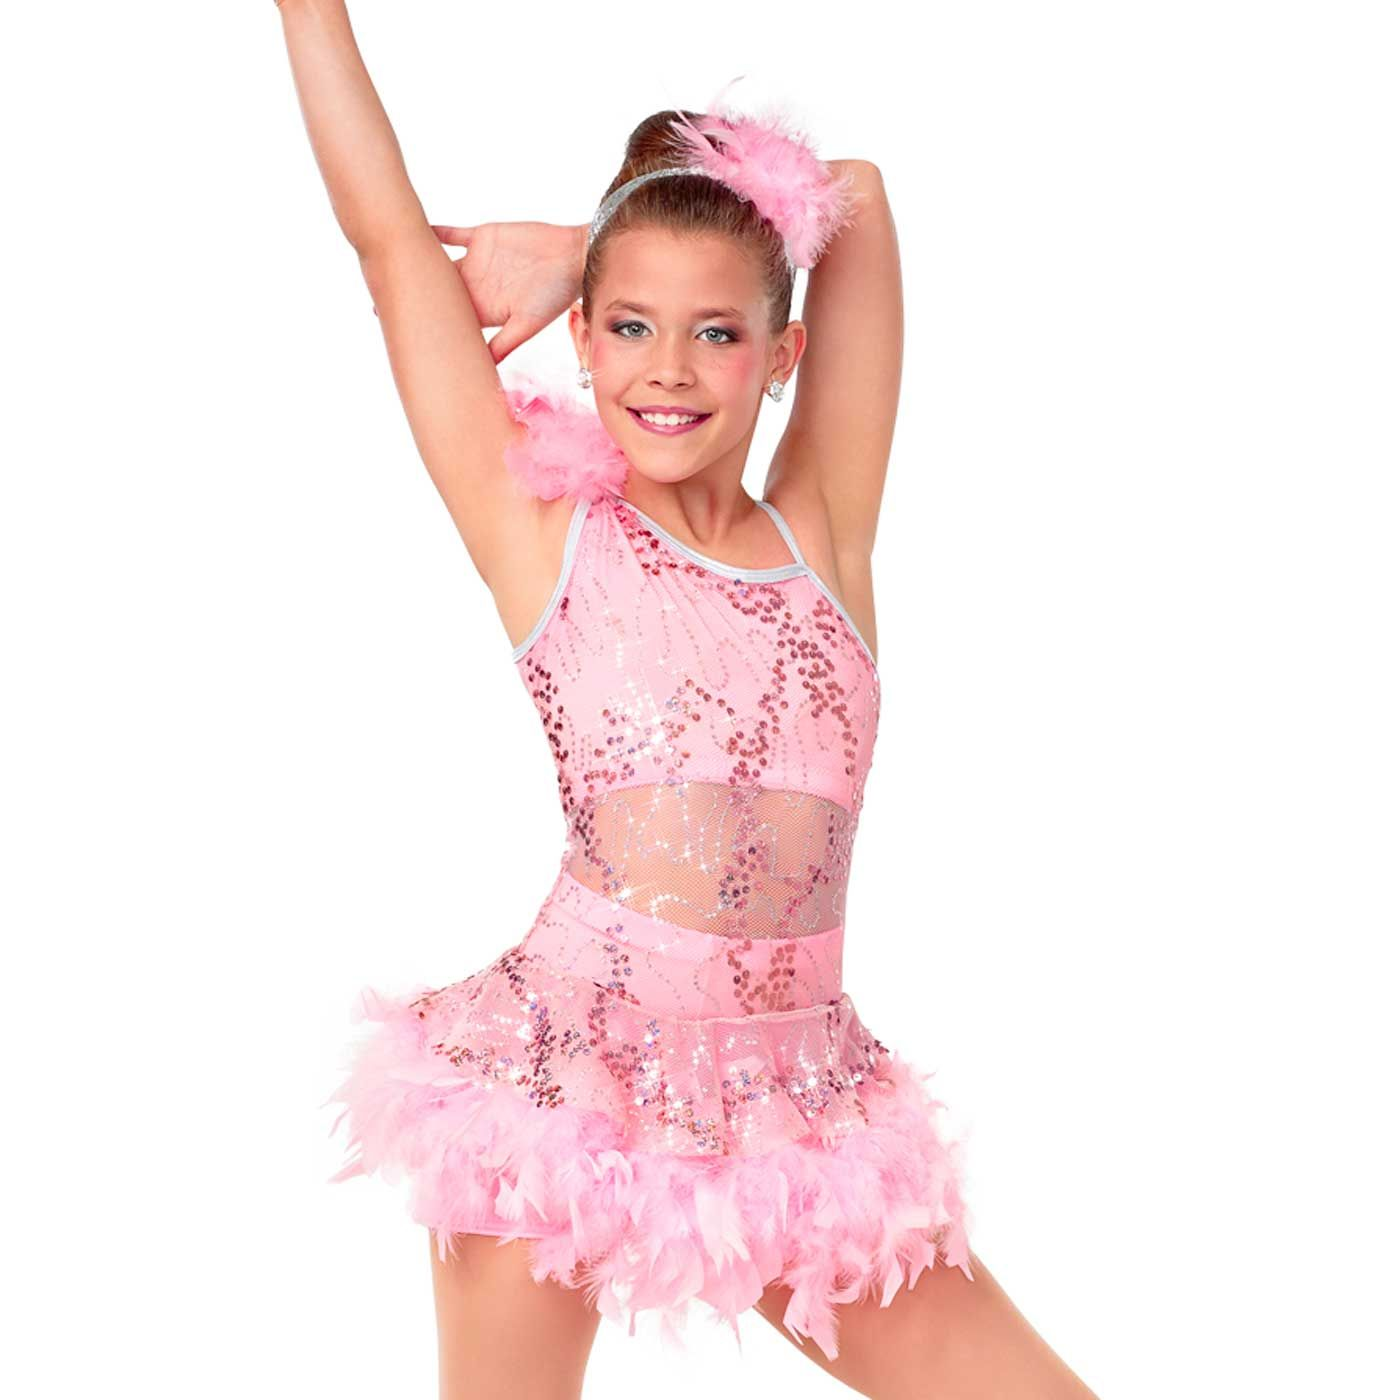 Curtain Call Uptown Cute Dance Costumes Dance Outfits